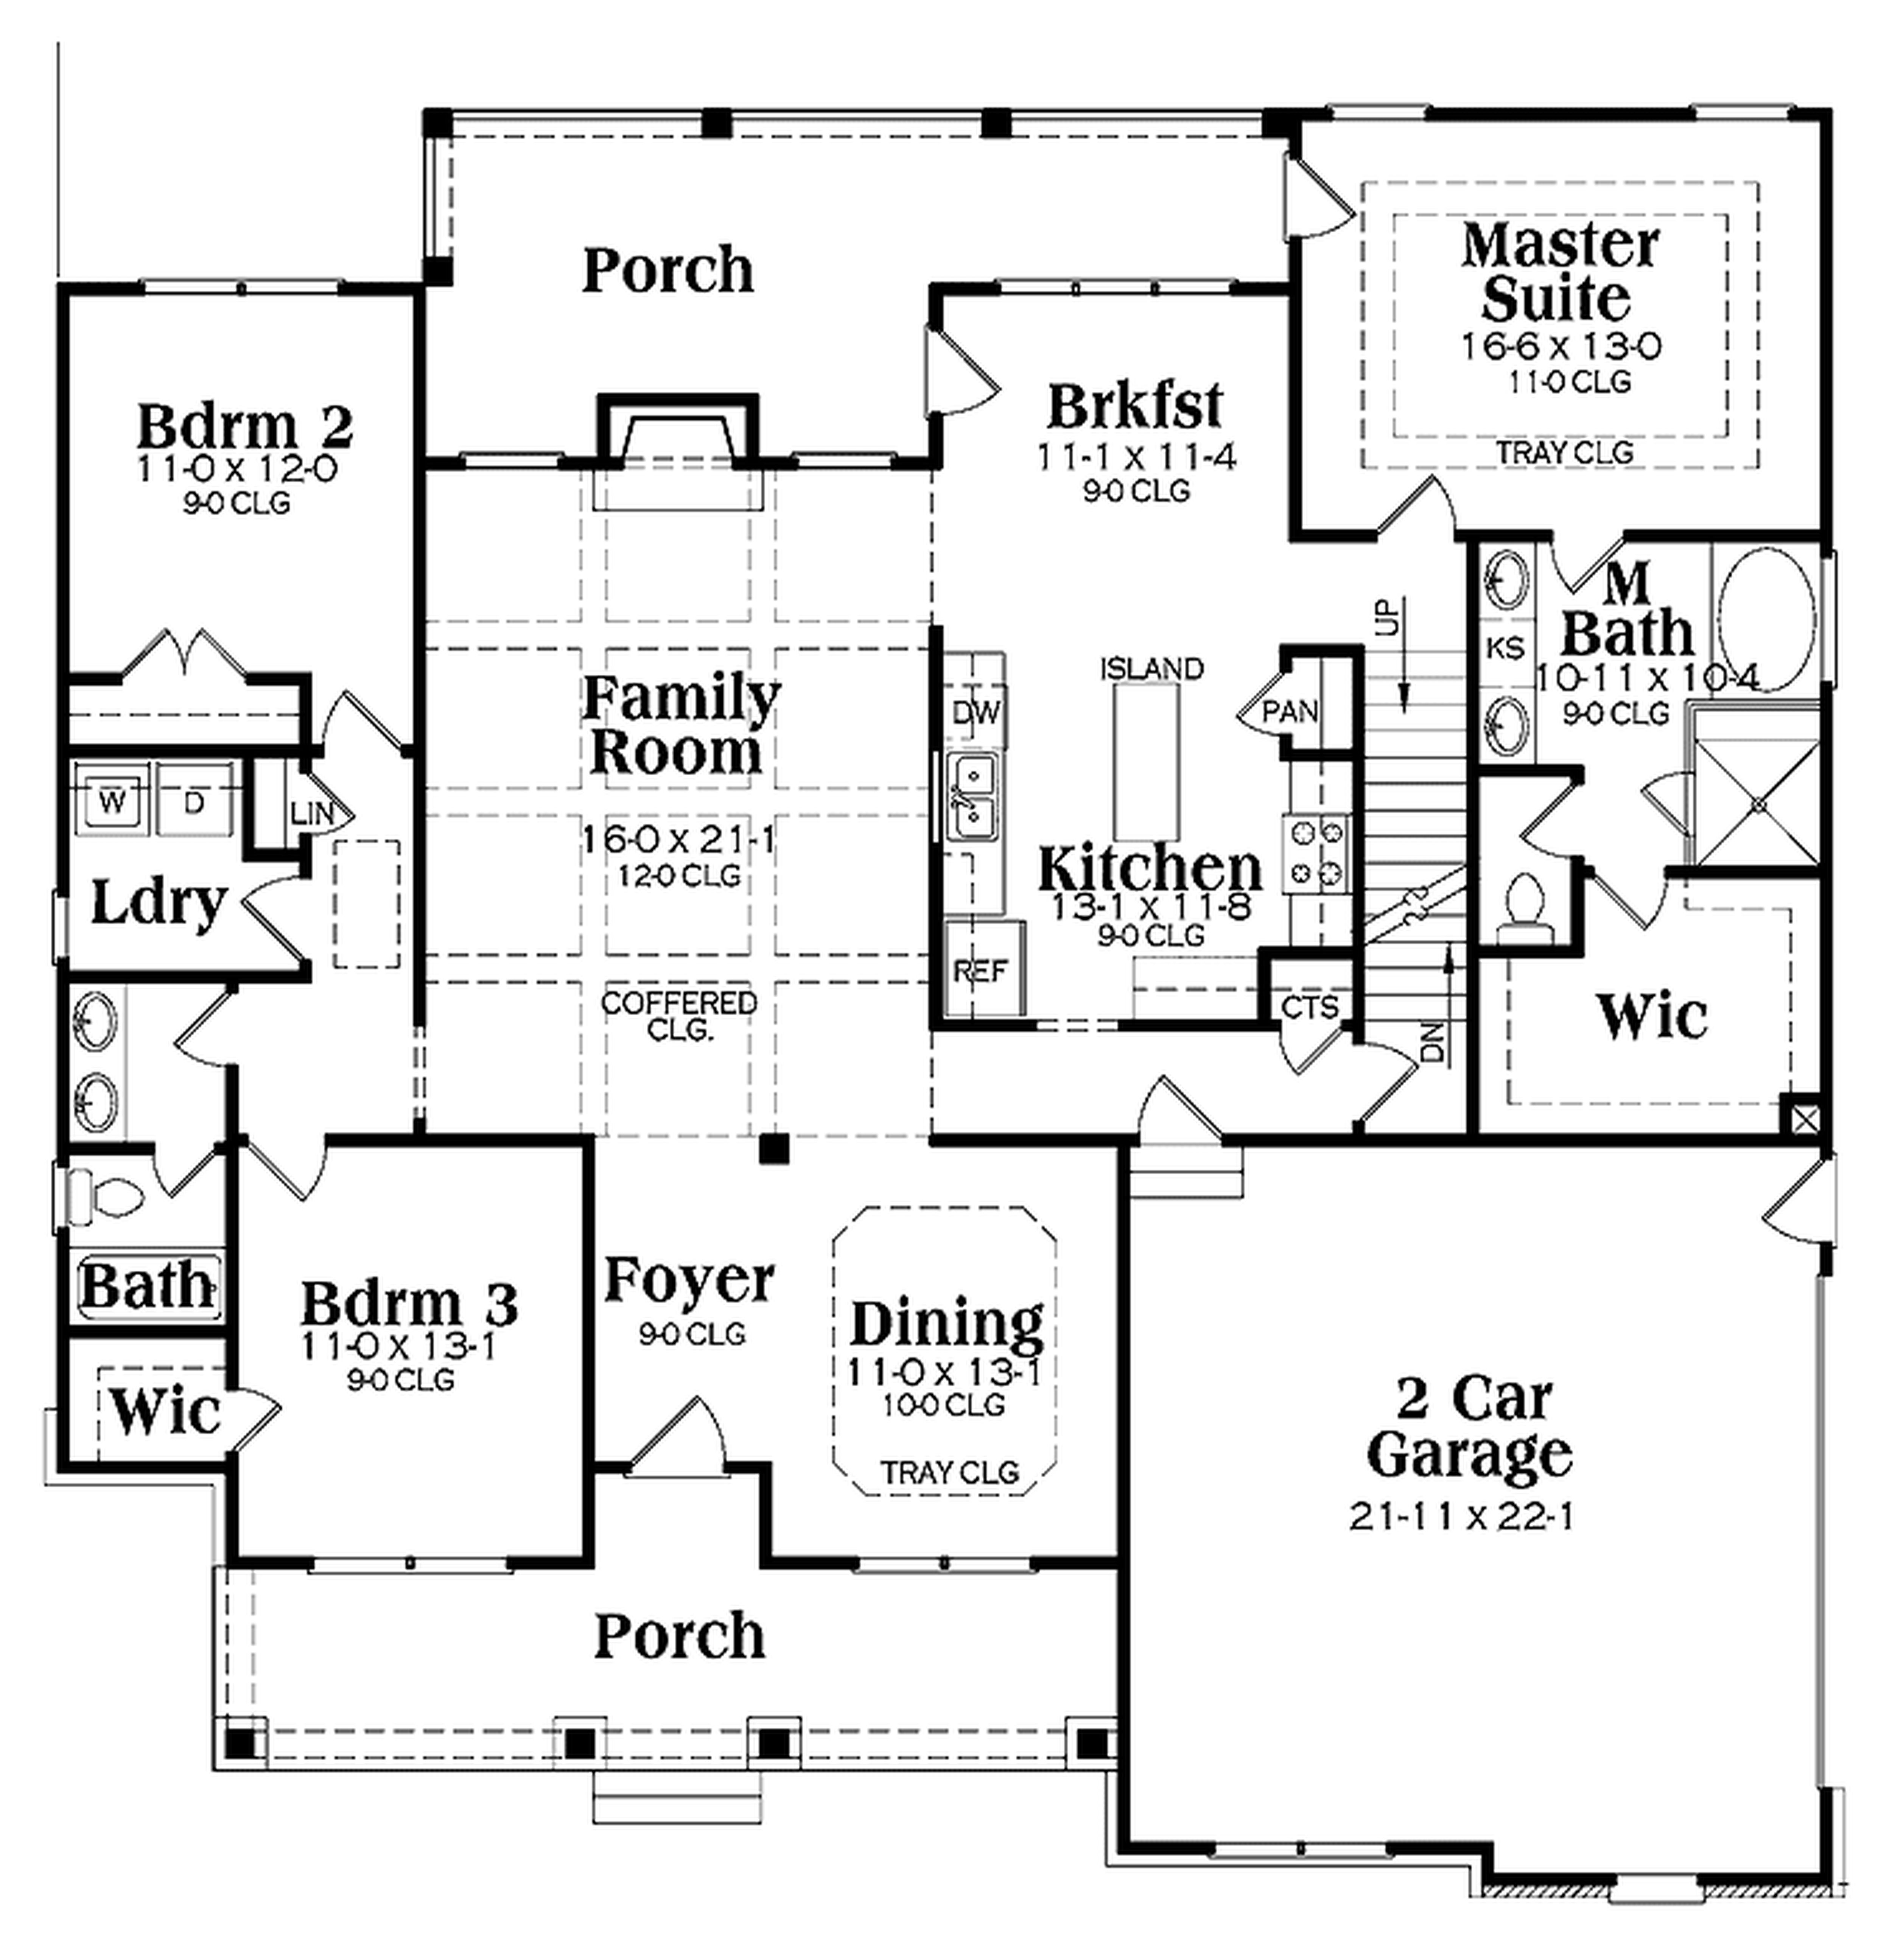 Comely Designing A House Innovation Hot Small House Design Ideas    Comely Designing A House Innovation Hot Small House Design Ideas Stunning Furnishings Concept  Bedroom Ranch House Floor Plansfloor Plans Aflfpw